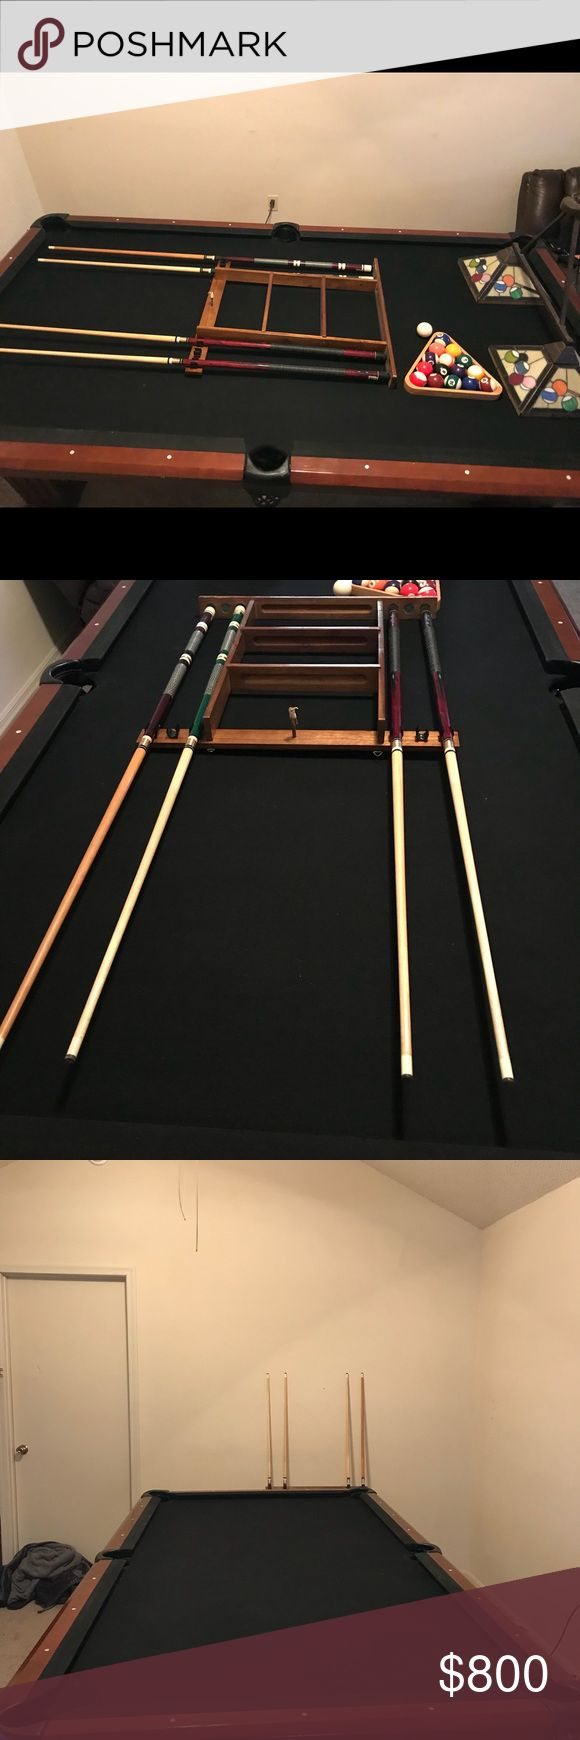 Industrial Size Pool Table 4 pool sticks, 1 pool stick stand, triangle, and 1 billiard lamp shade Other